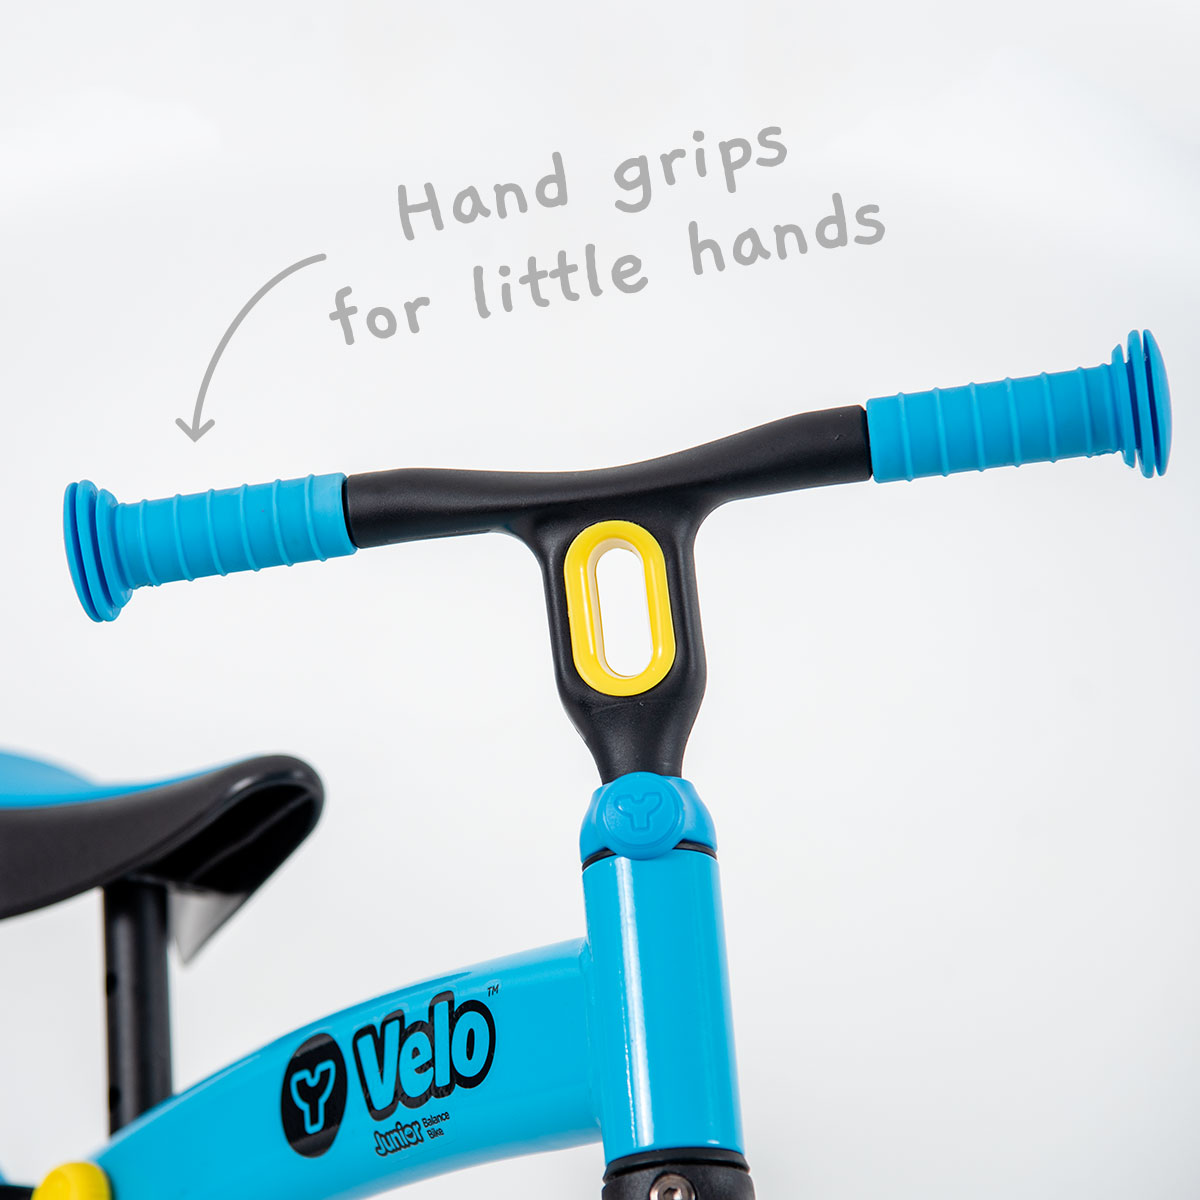 Small grips for small hands